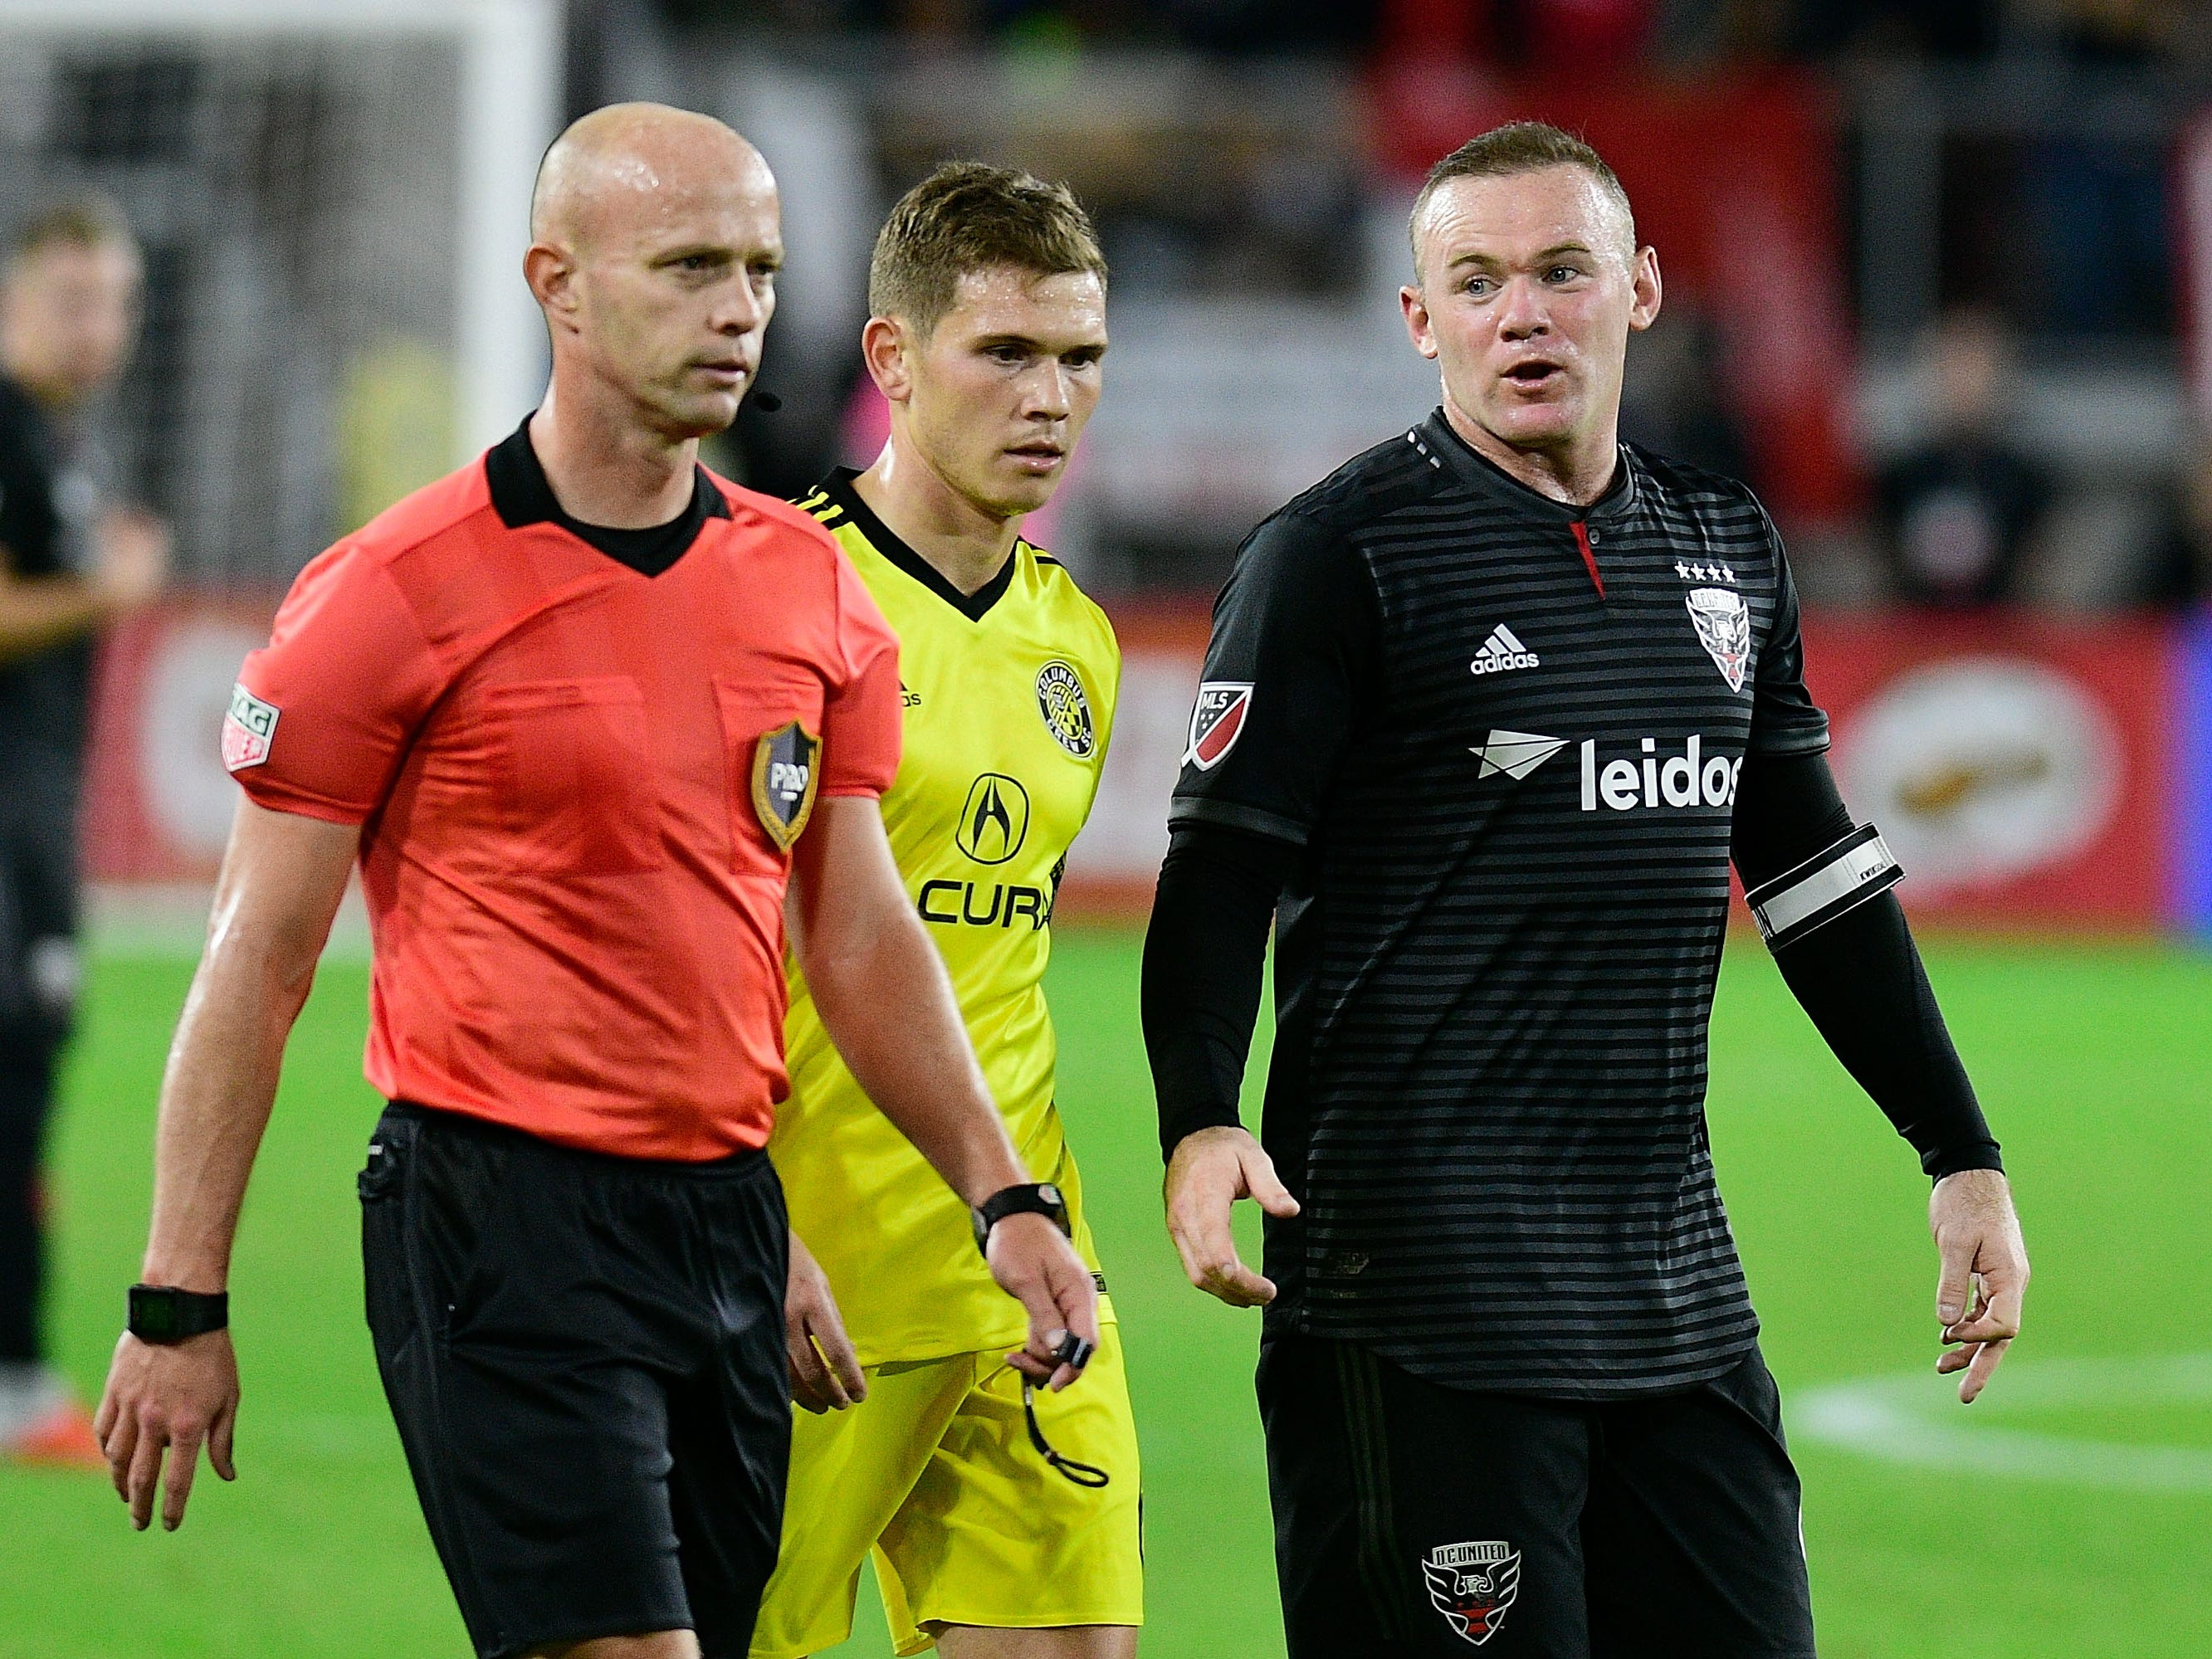 D.C. United's Wayne Rooney talks to referee Allen Champman during the second half against the Columbus Crew at Audi Field.